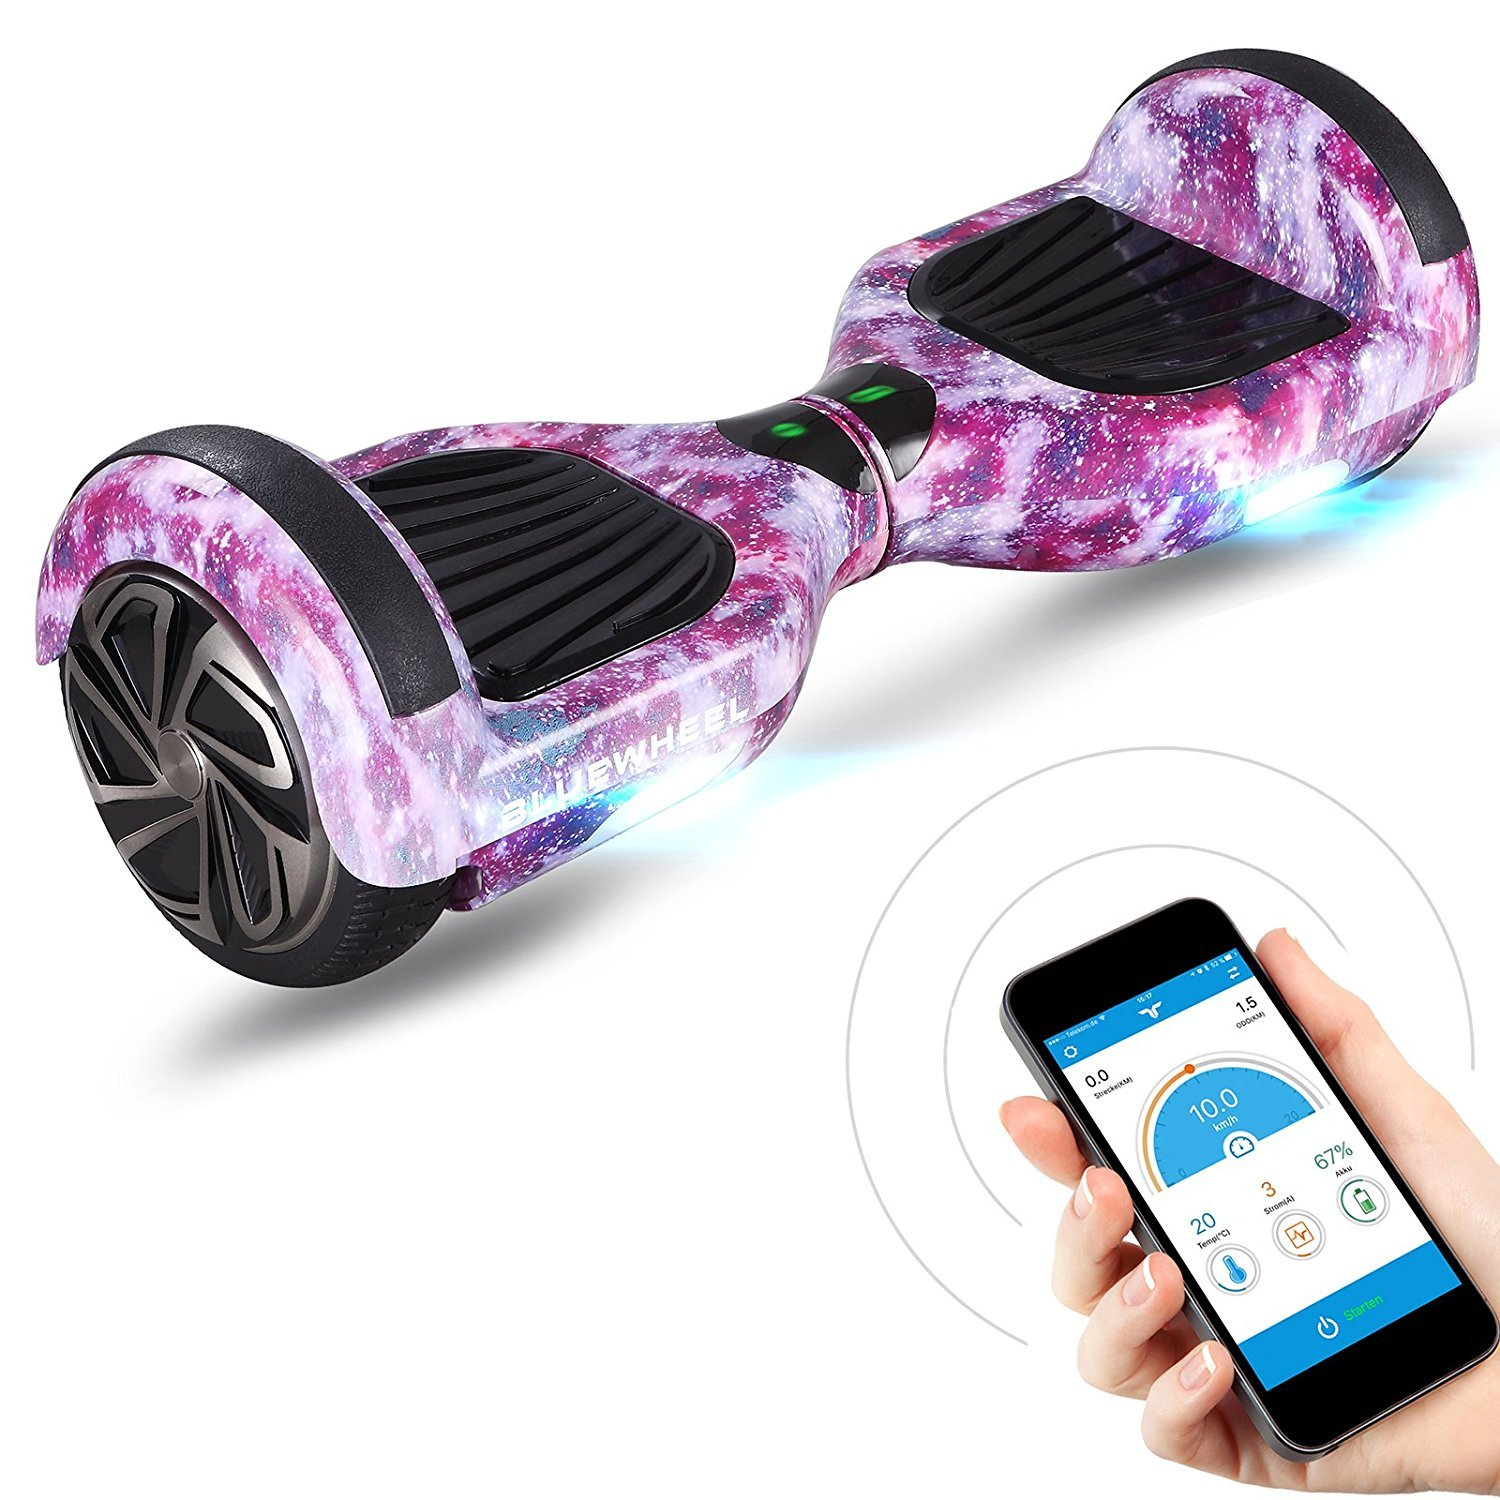 Hoverboard rose galaxy